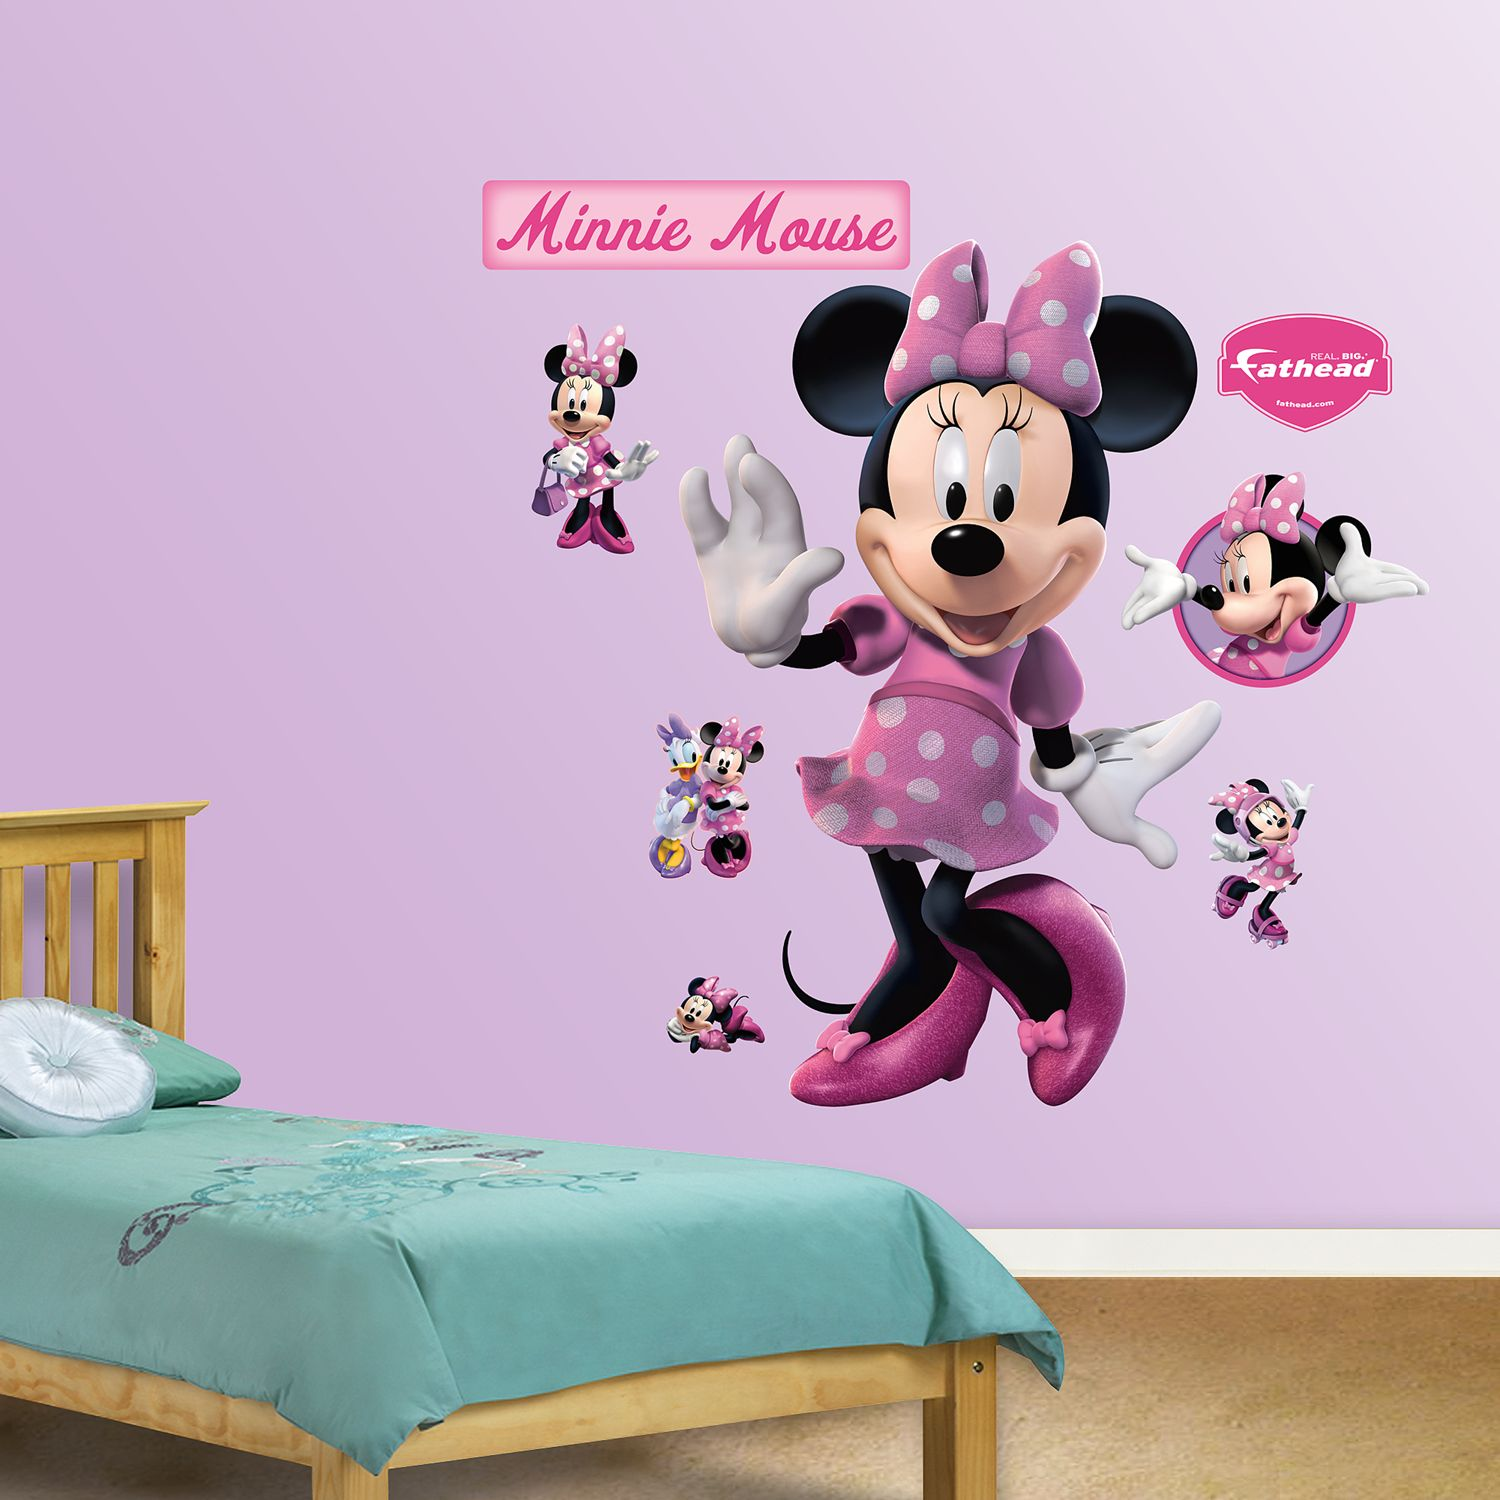 Nice Disney Mickey Mouse U0026 Friends Minnie Mouse Wall Decals By Fathead